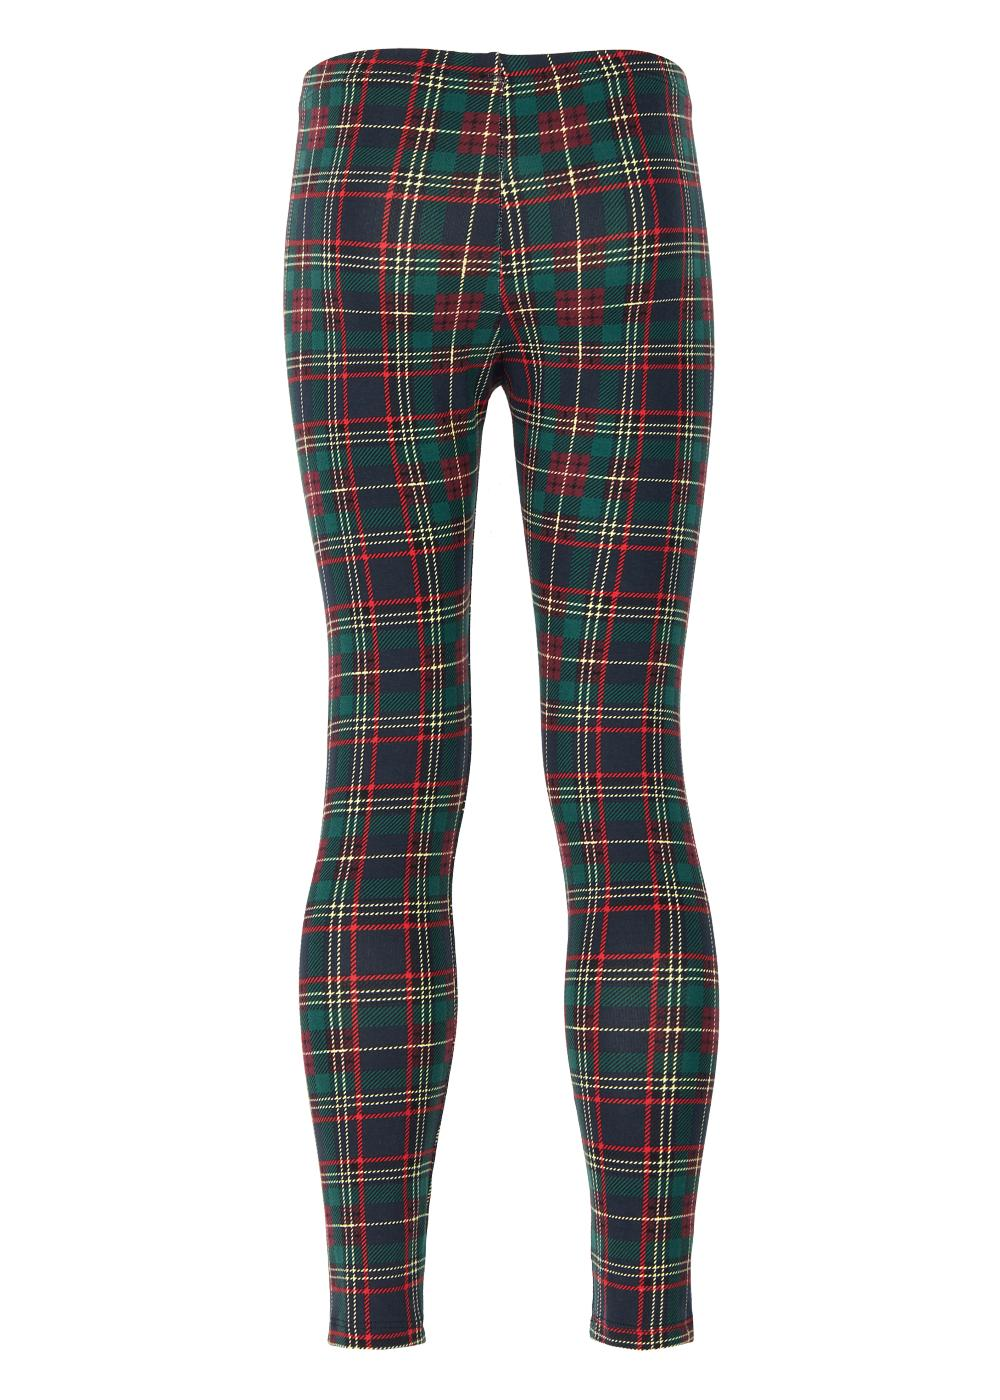 Leggings Fille à Motif Tartan